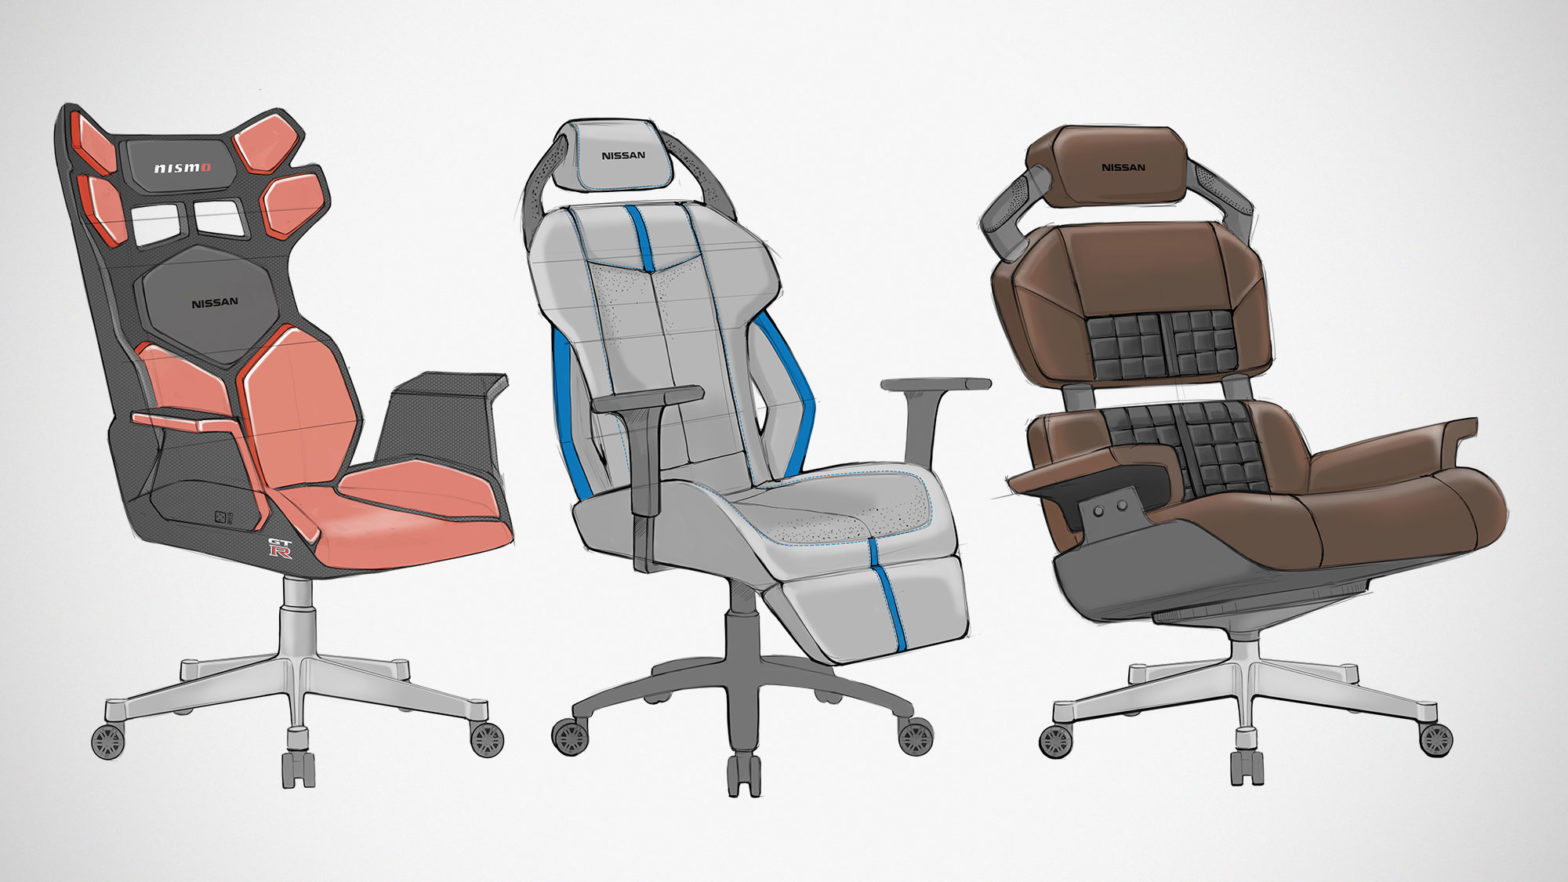 Nissan Esports Gaming Chairs